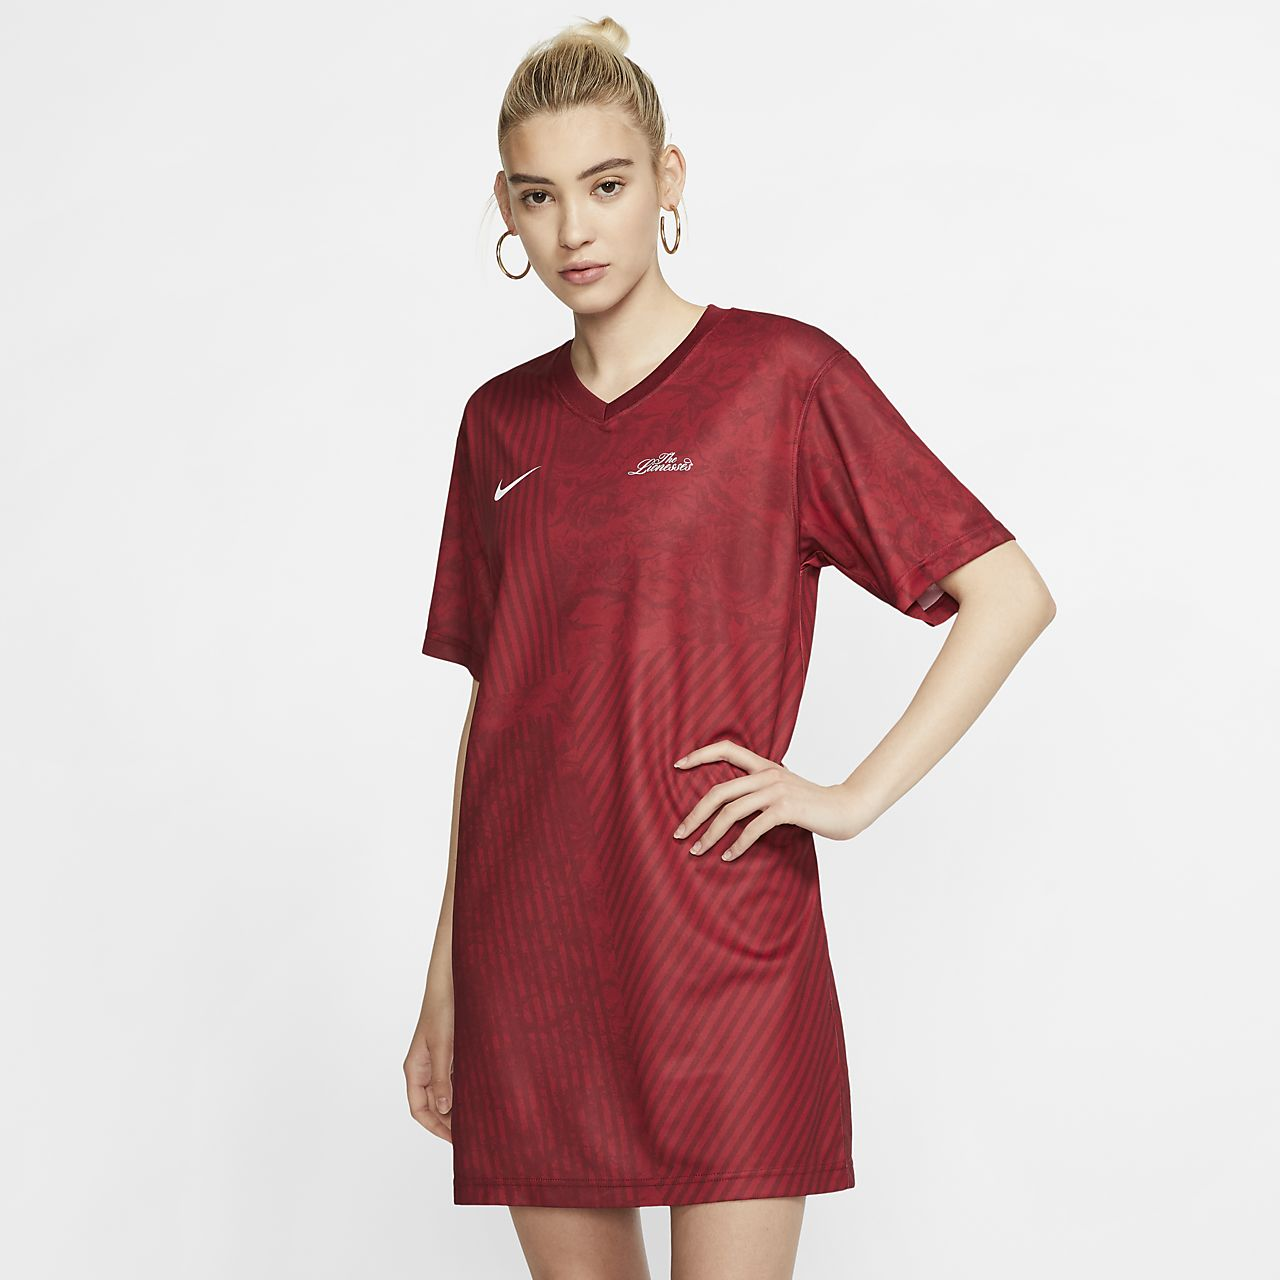 d6b48e5cd Nike Sportswear Unité Totale Women s Dress. Nike.com ZA